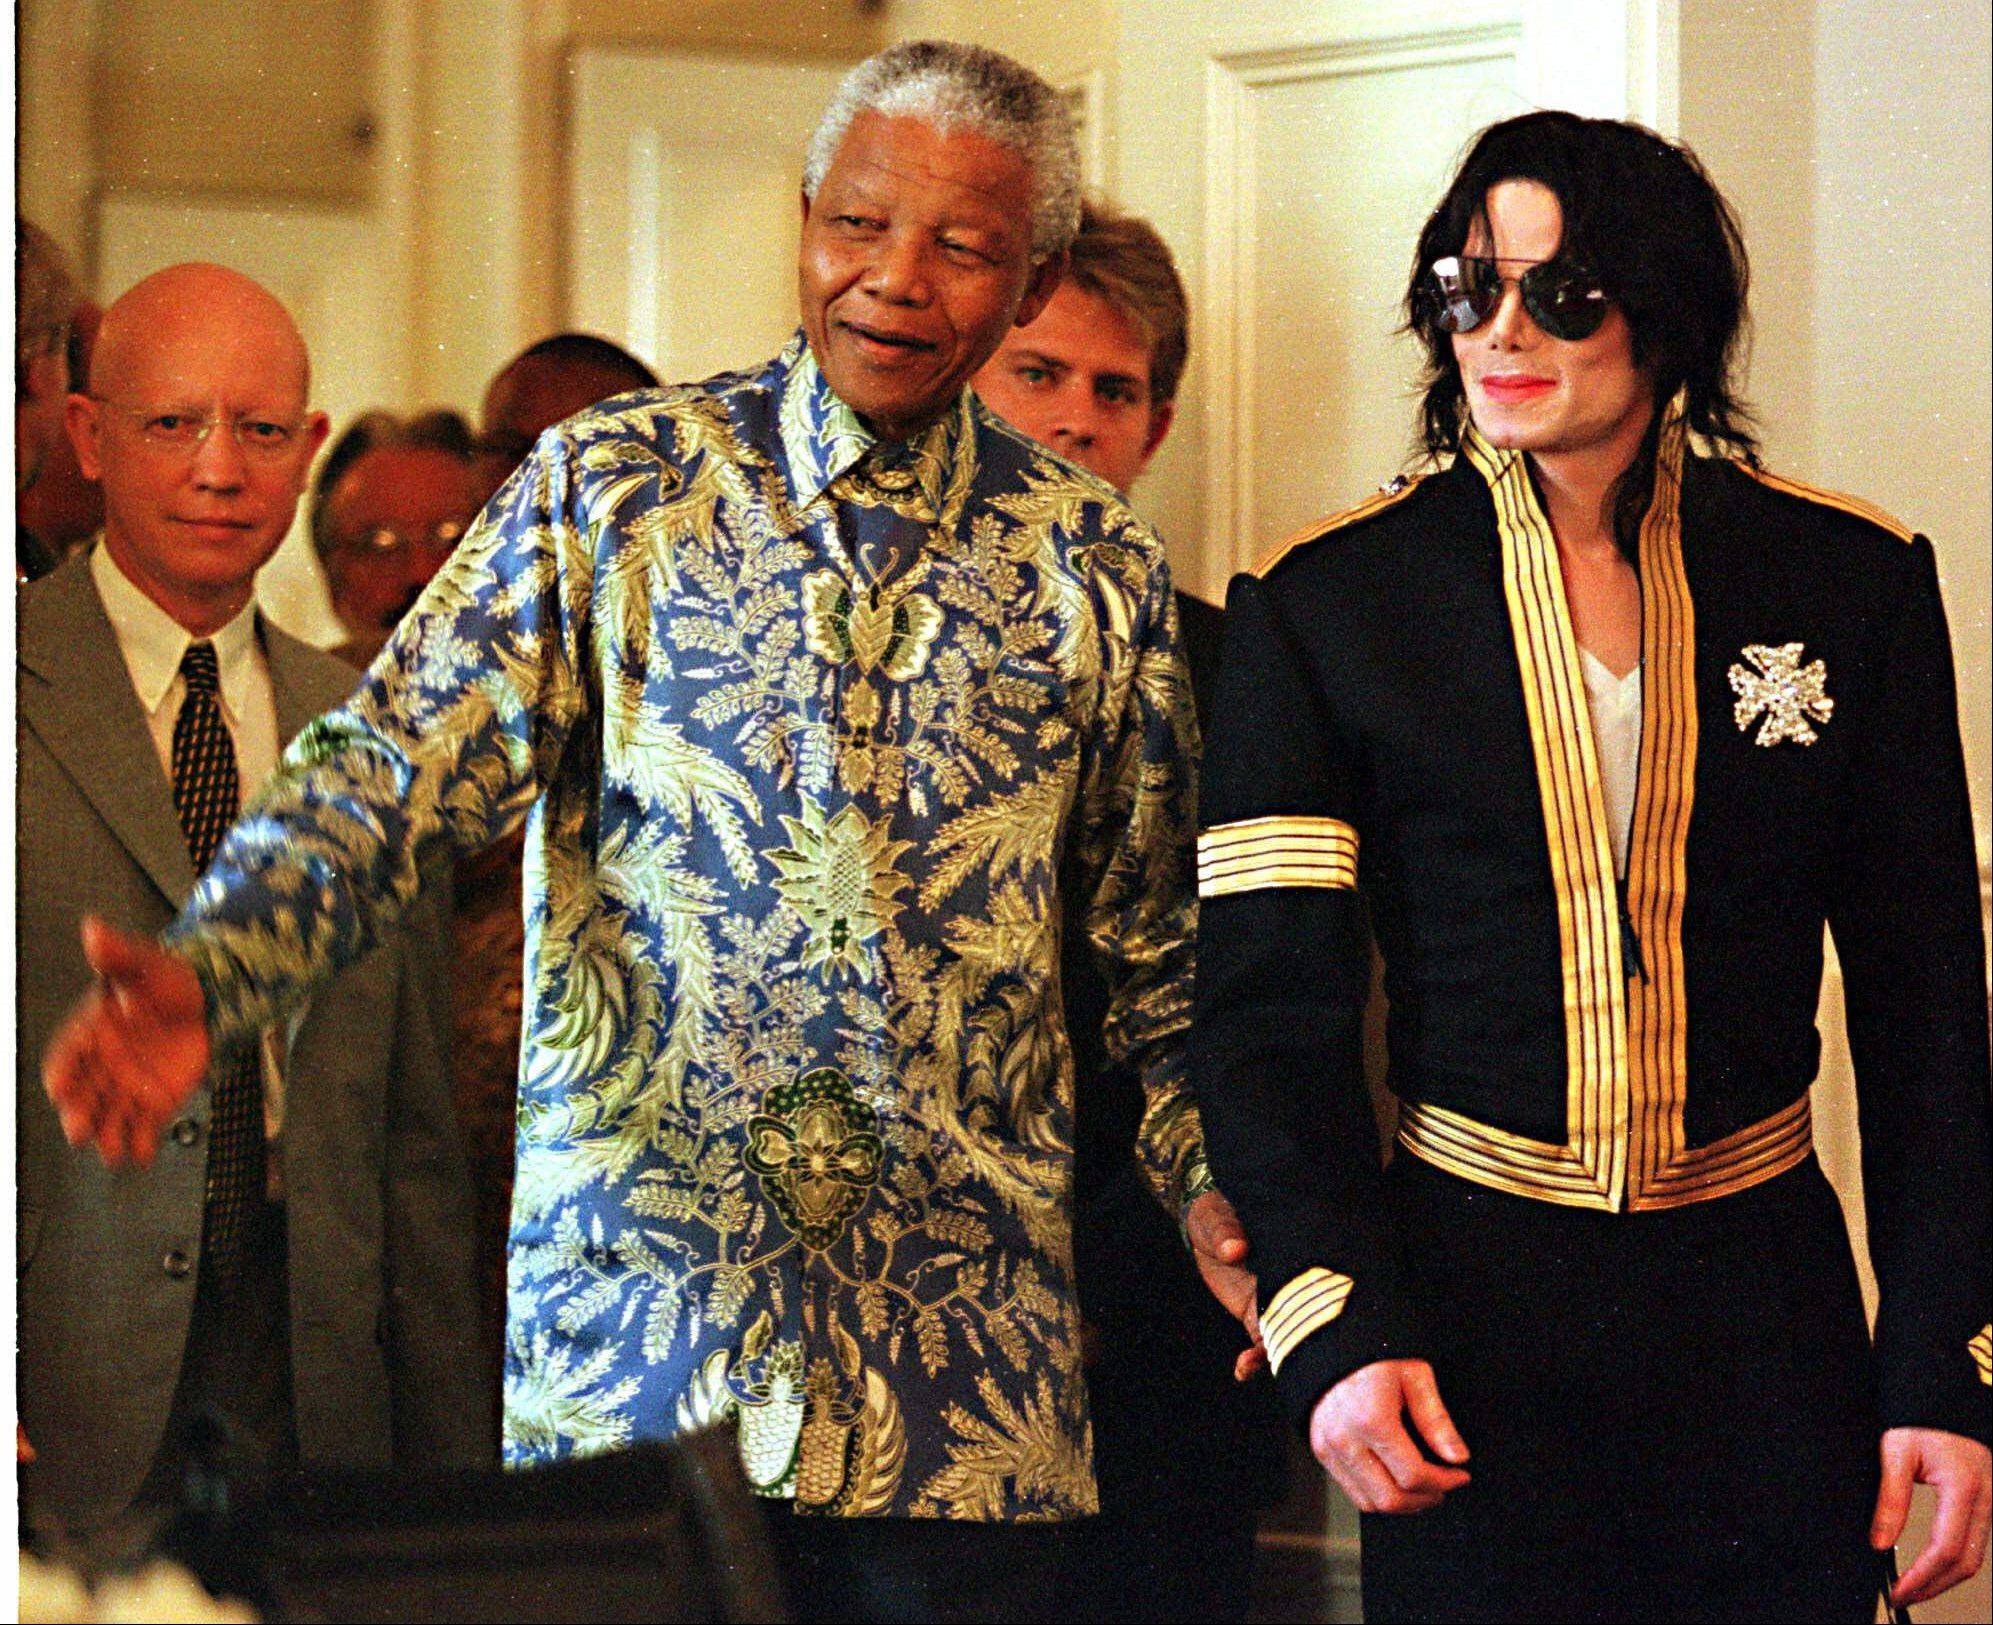 South African President Nelson Mandela, left, and American pop singer Michael Jackson arrive at a news conference in Cape Town Tuesday, March 23, 1999.